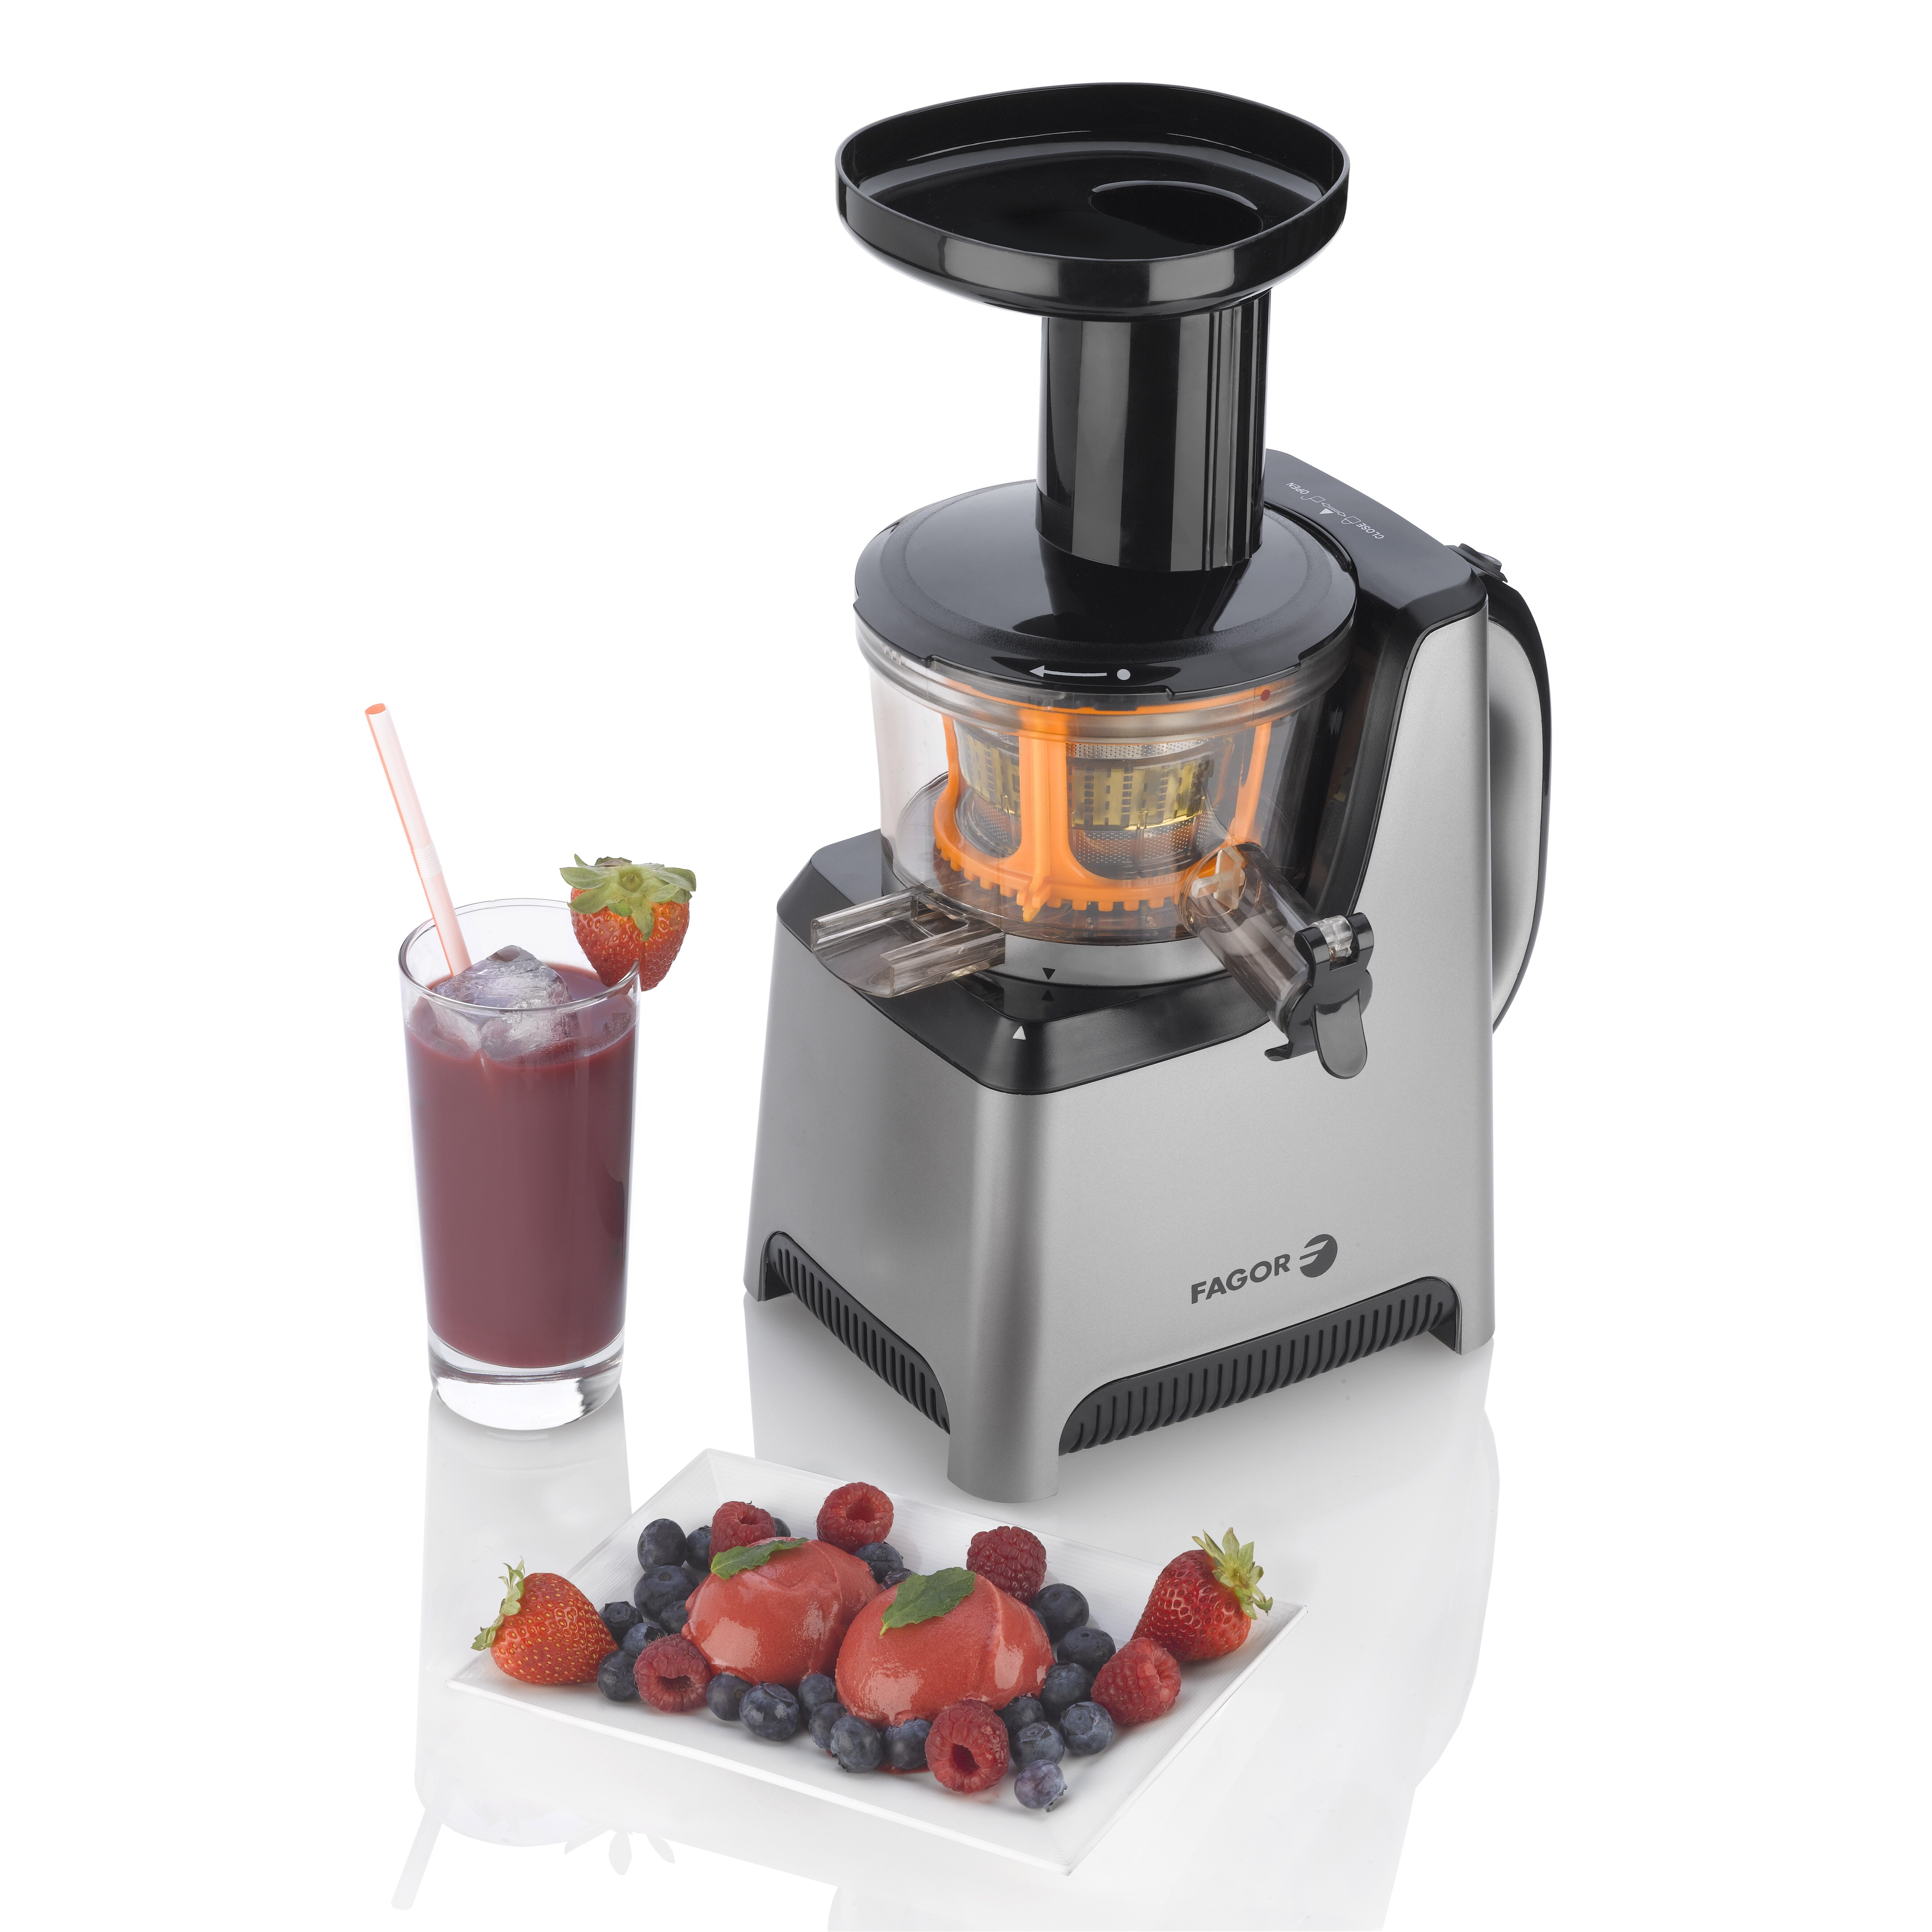 Slow Juicer Fagor : Fagor Platino Slow Juicer and Sorbet Maker AllModern